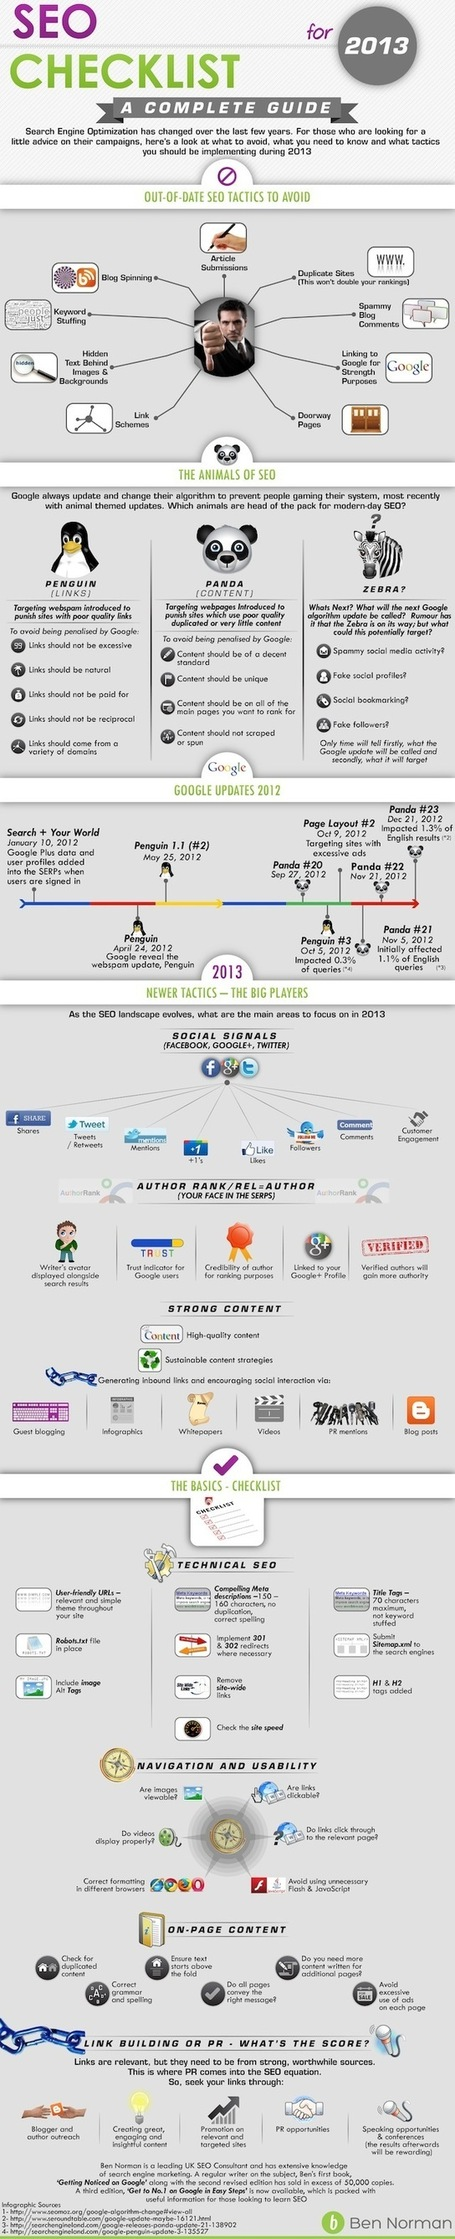 Infographie : le référencement en 2013, à faire et à éviter | Webmarketing & Communication digitale | Scoop.it